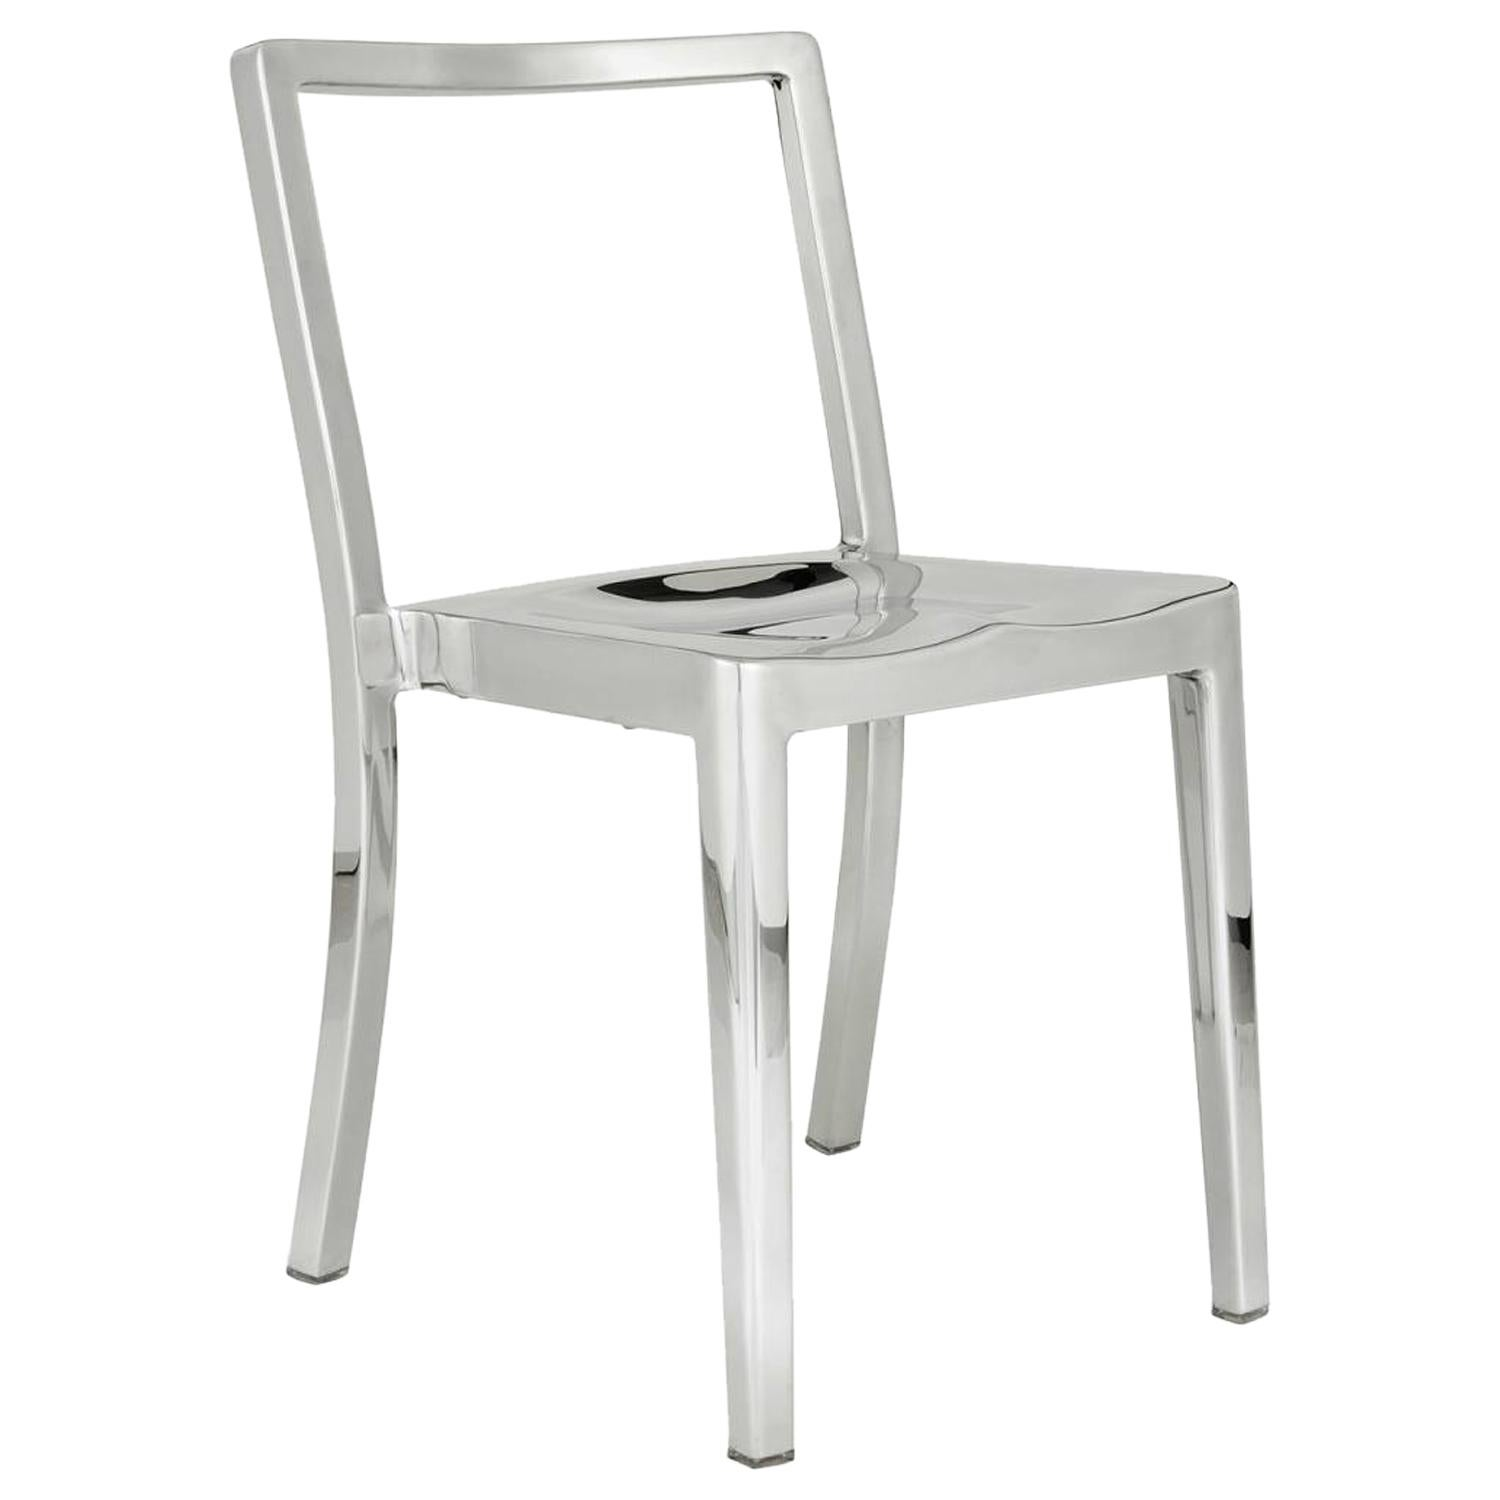 Emeco Icon Chair in Polished Aluminium by Philippe Starck